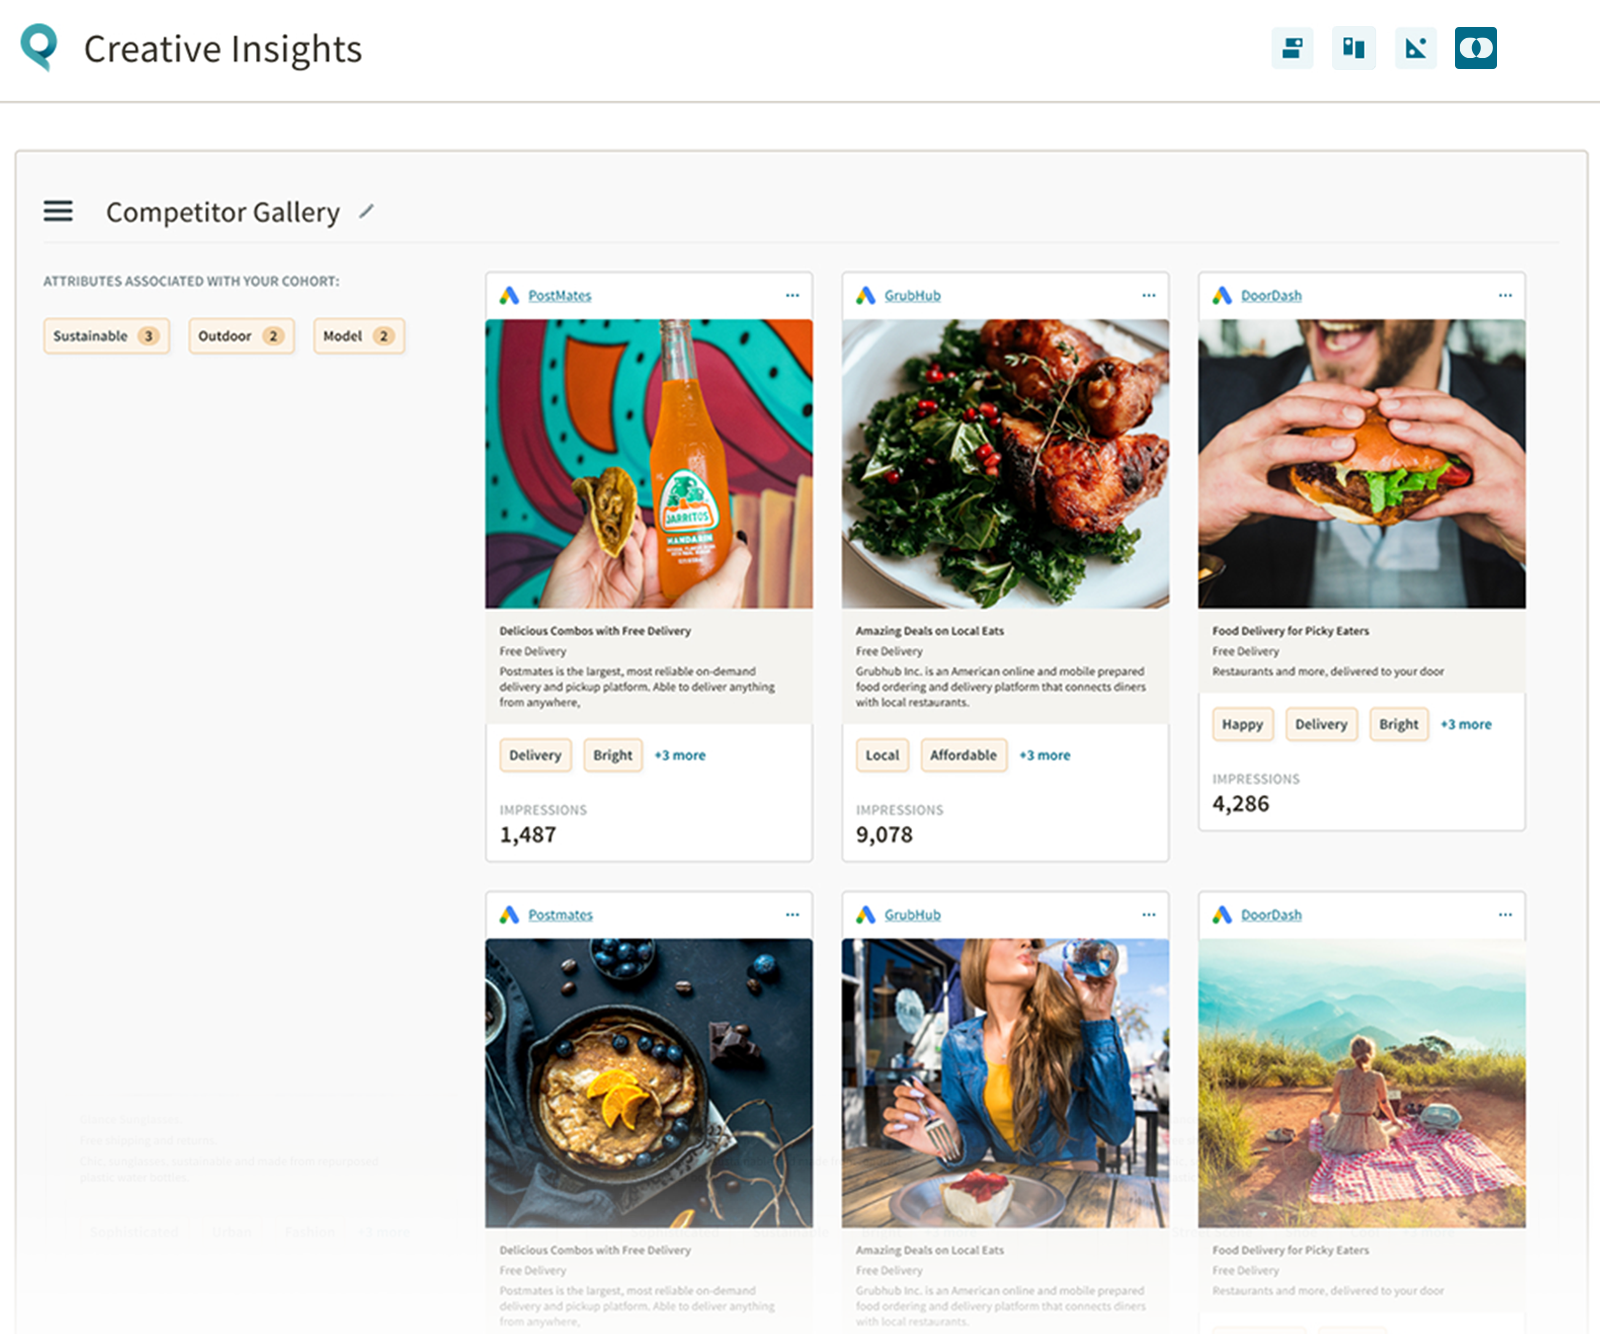 Creative Insights - Competitor View